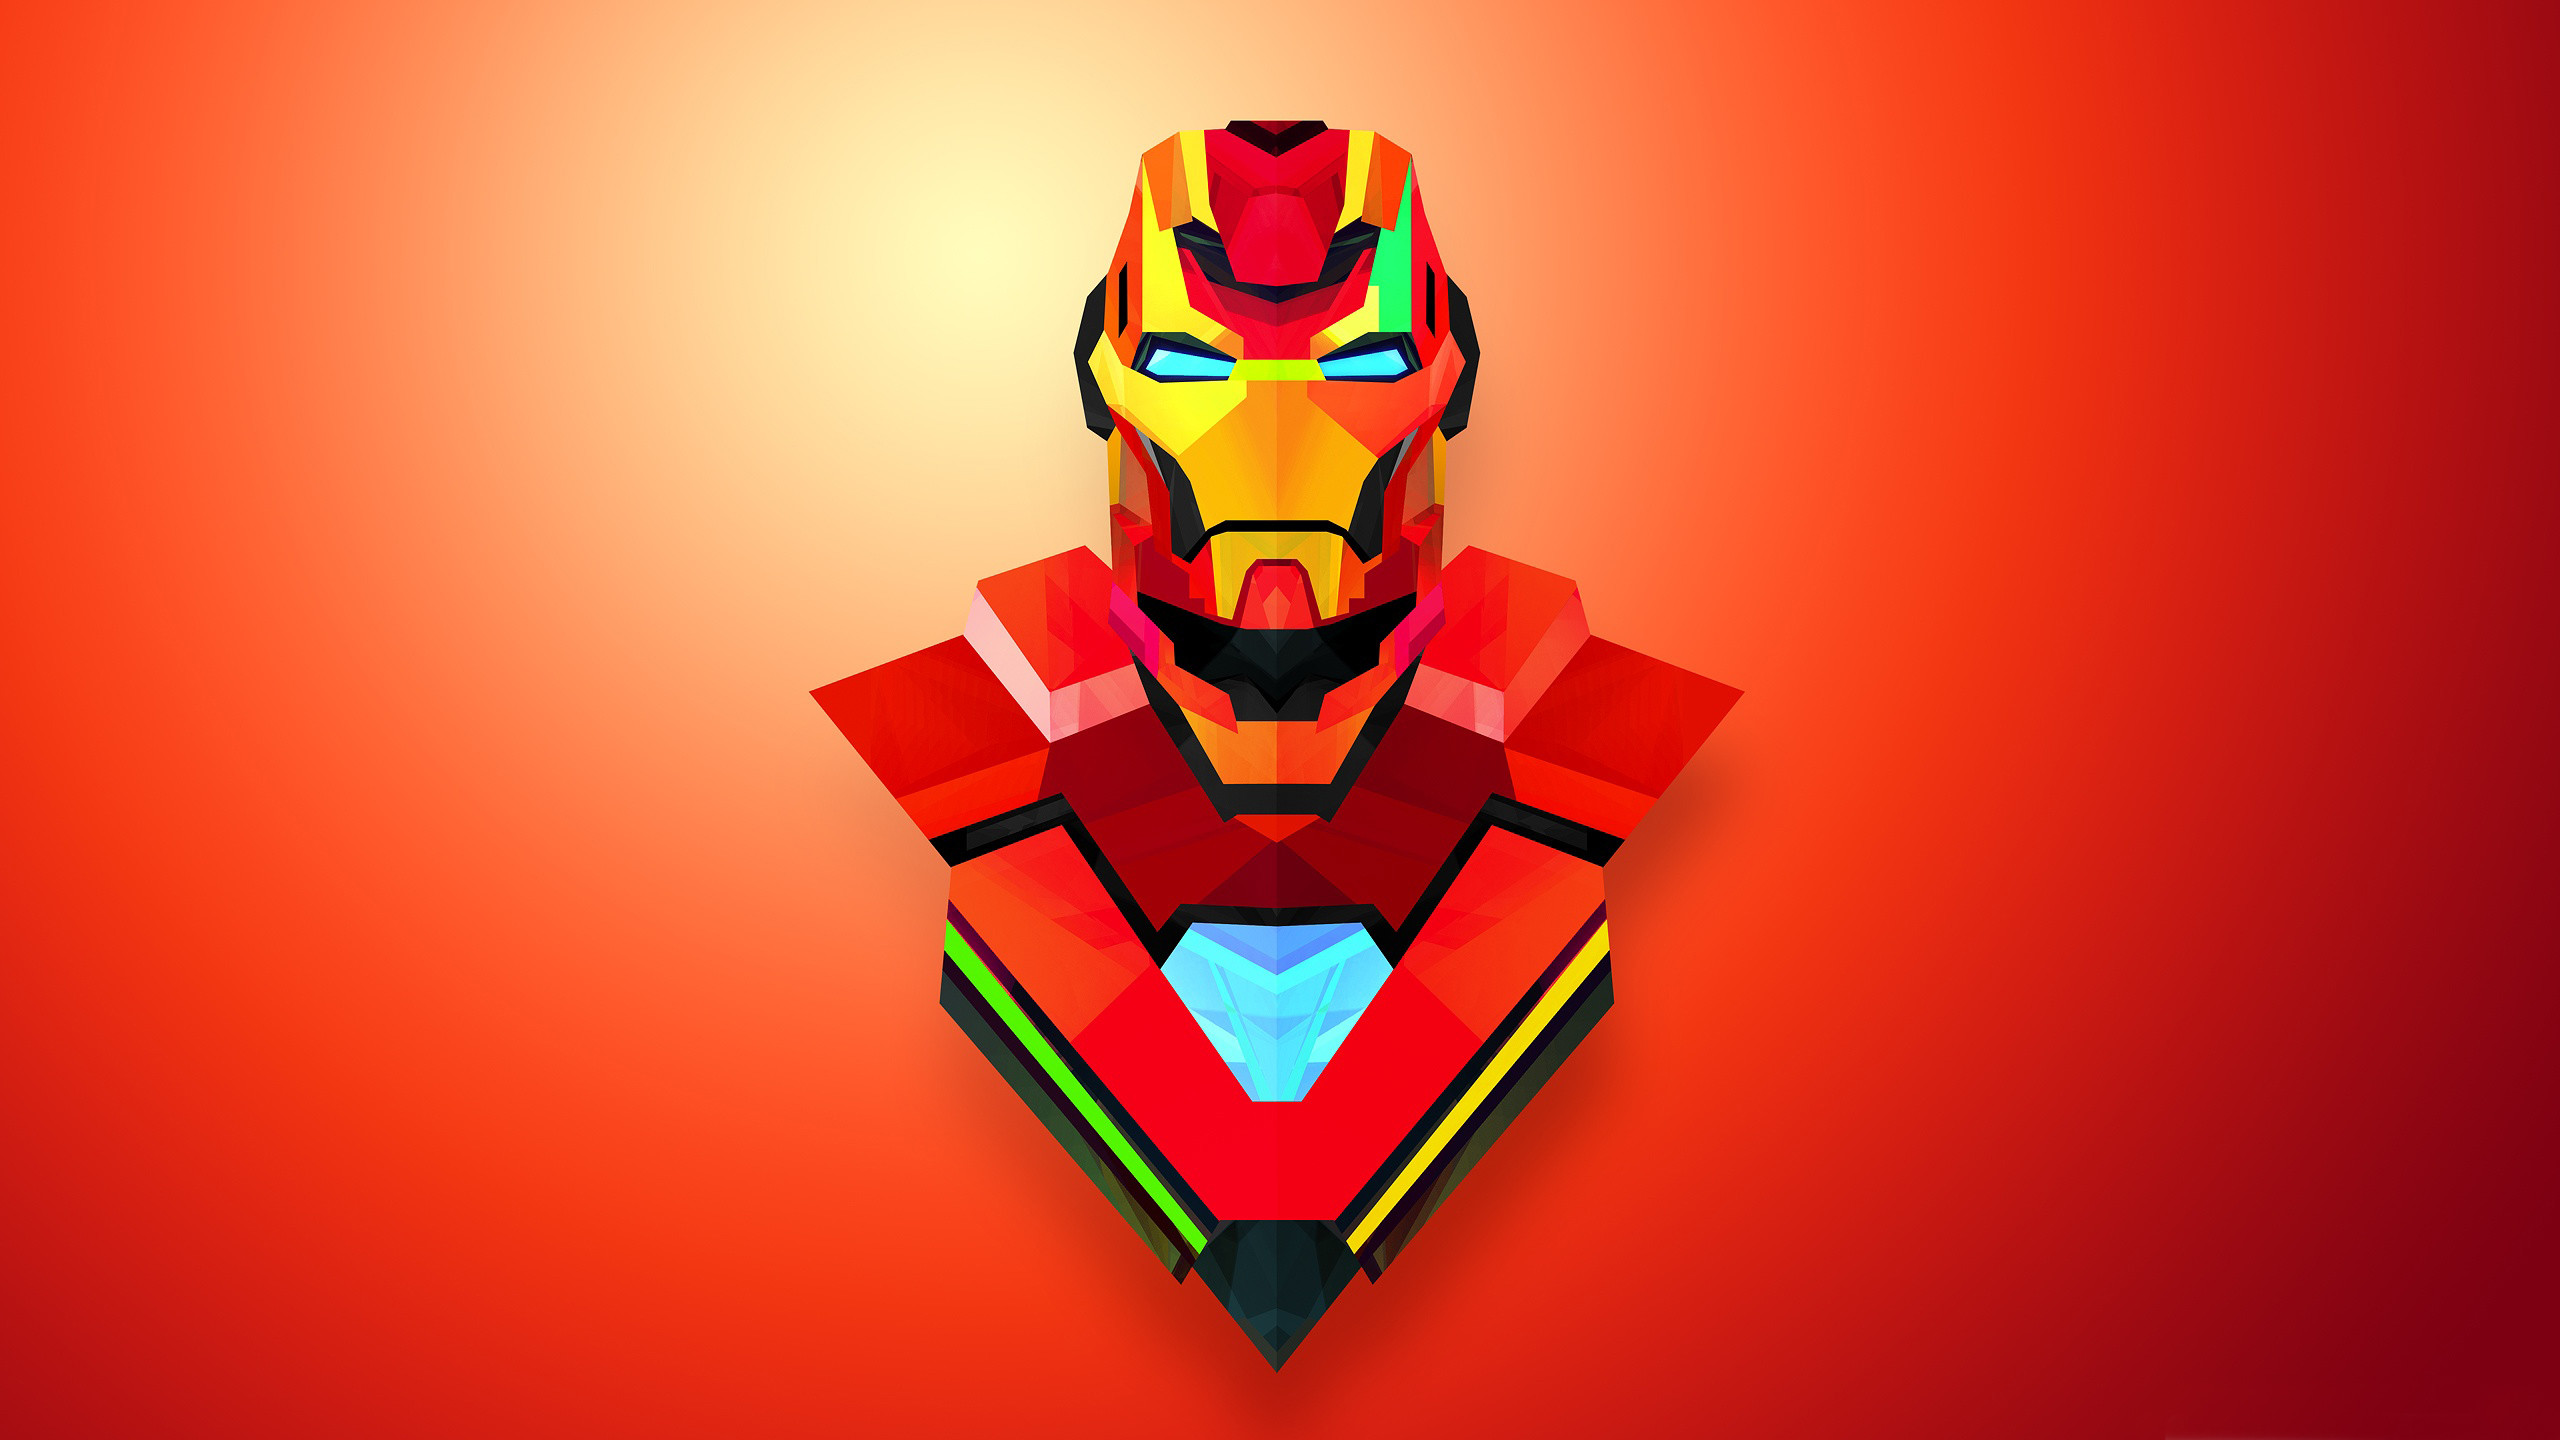 Super Hero Backgrounds (70+ Images